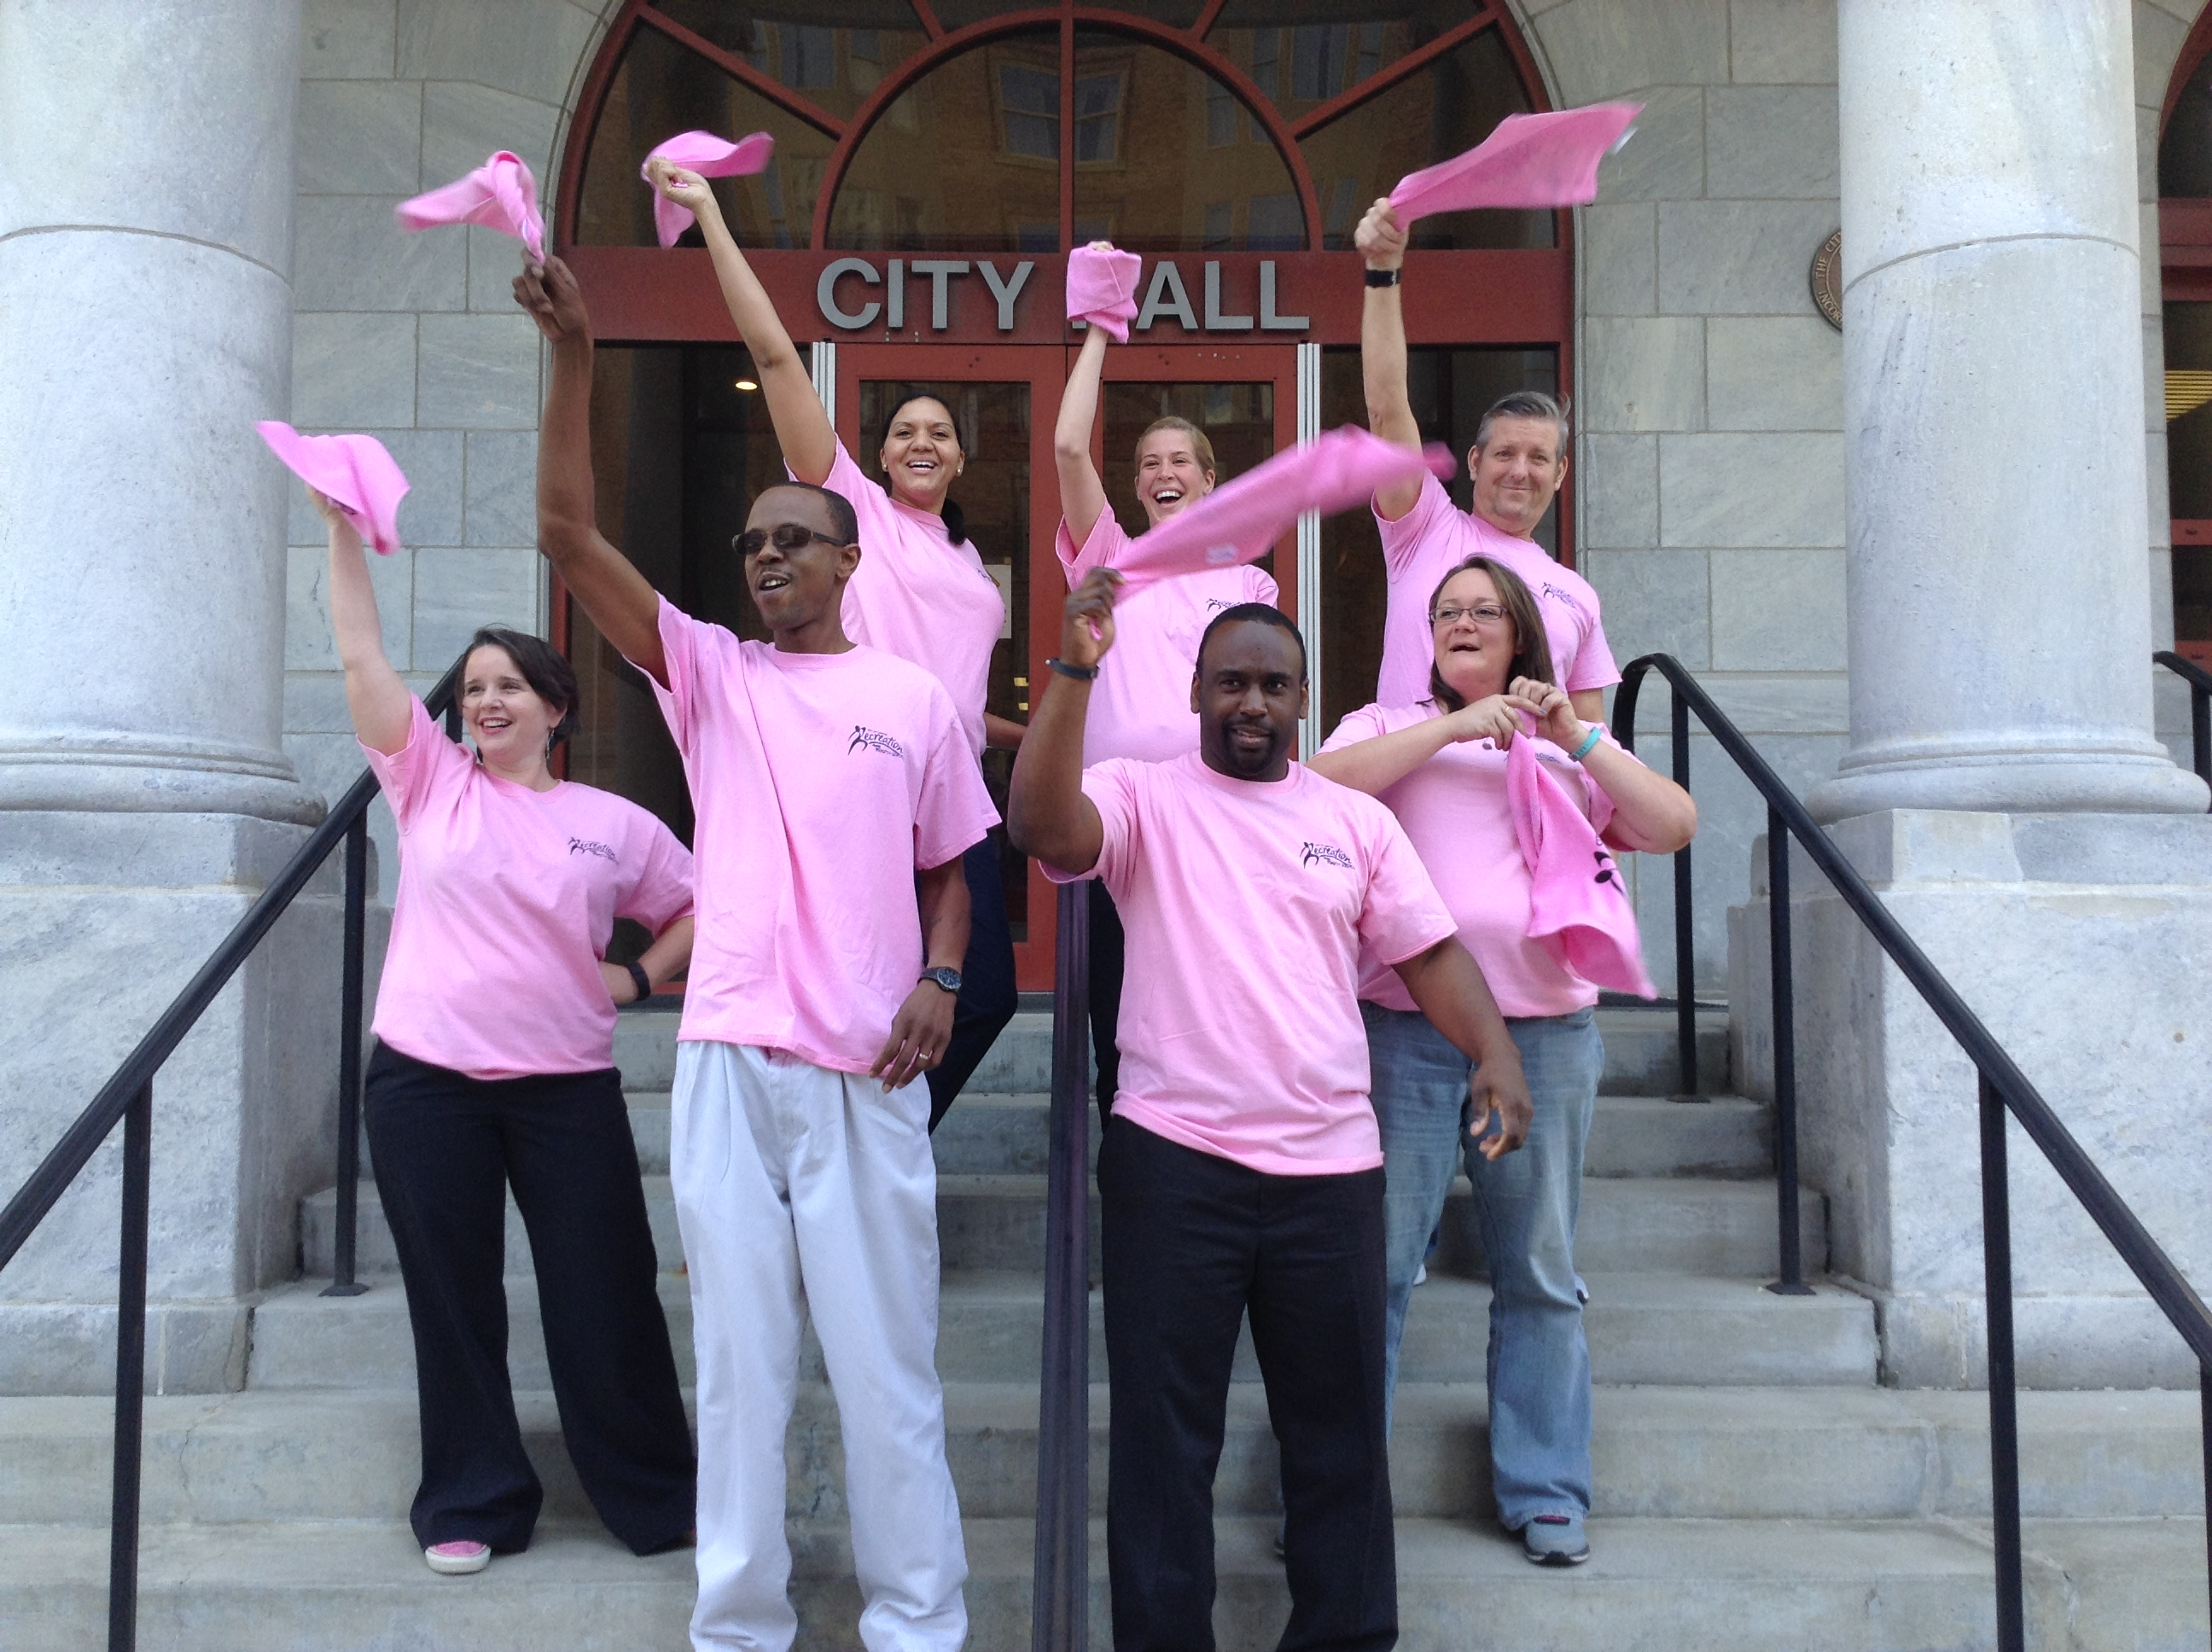 Pink towels waving at City Hall